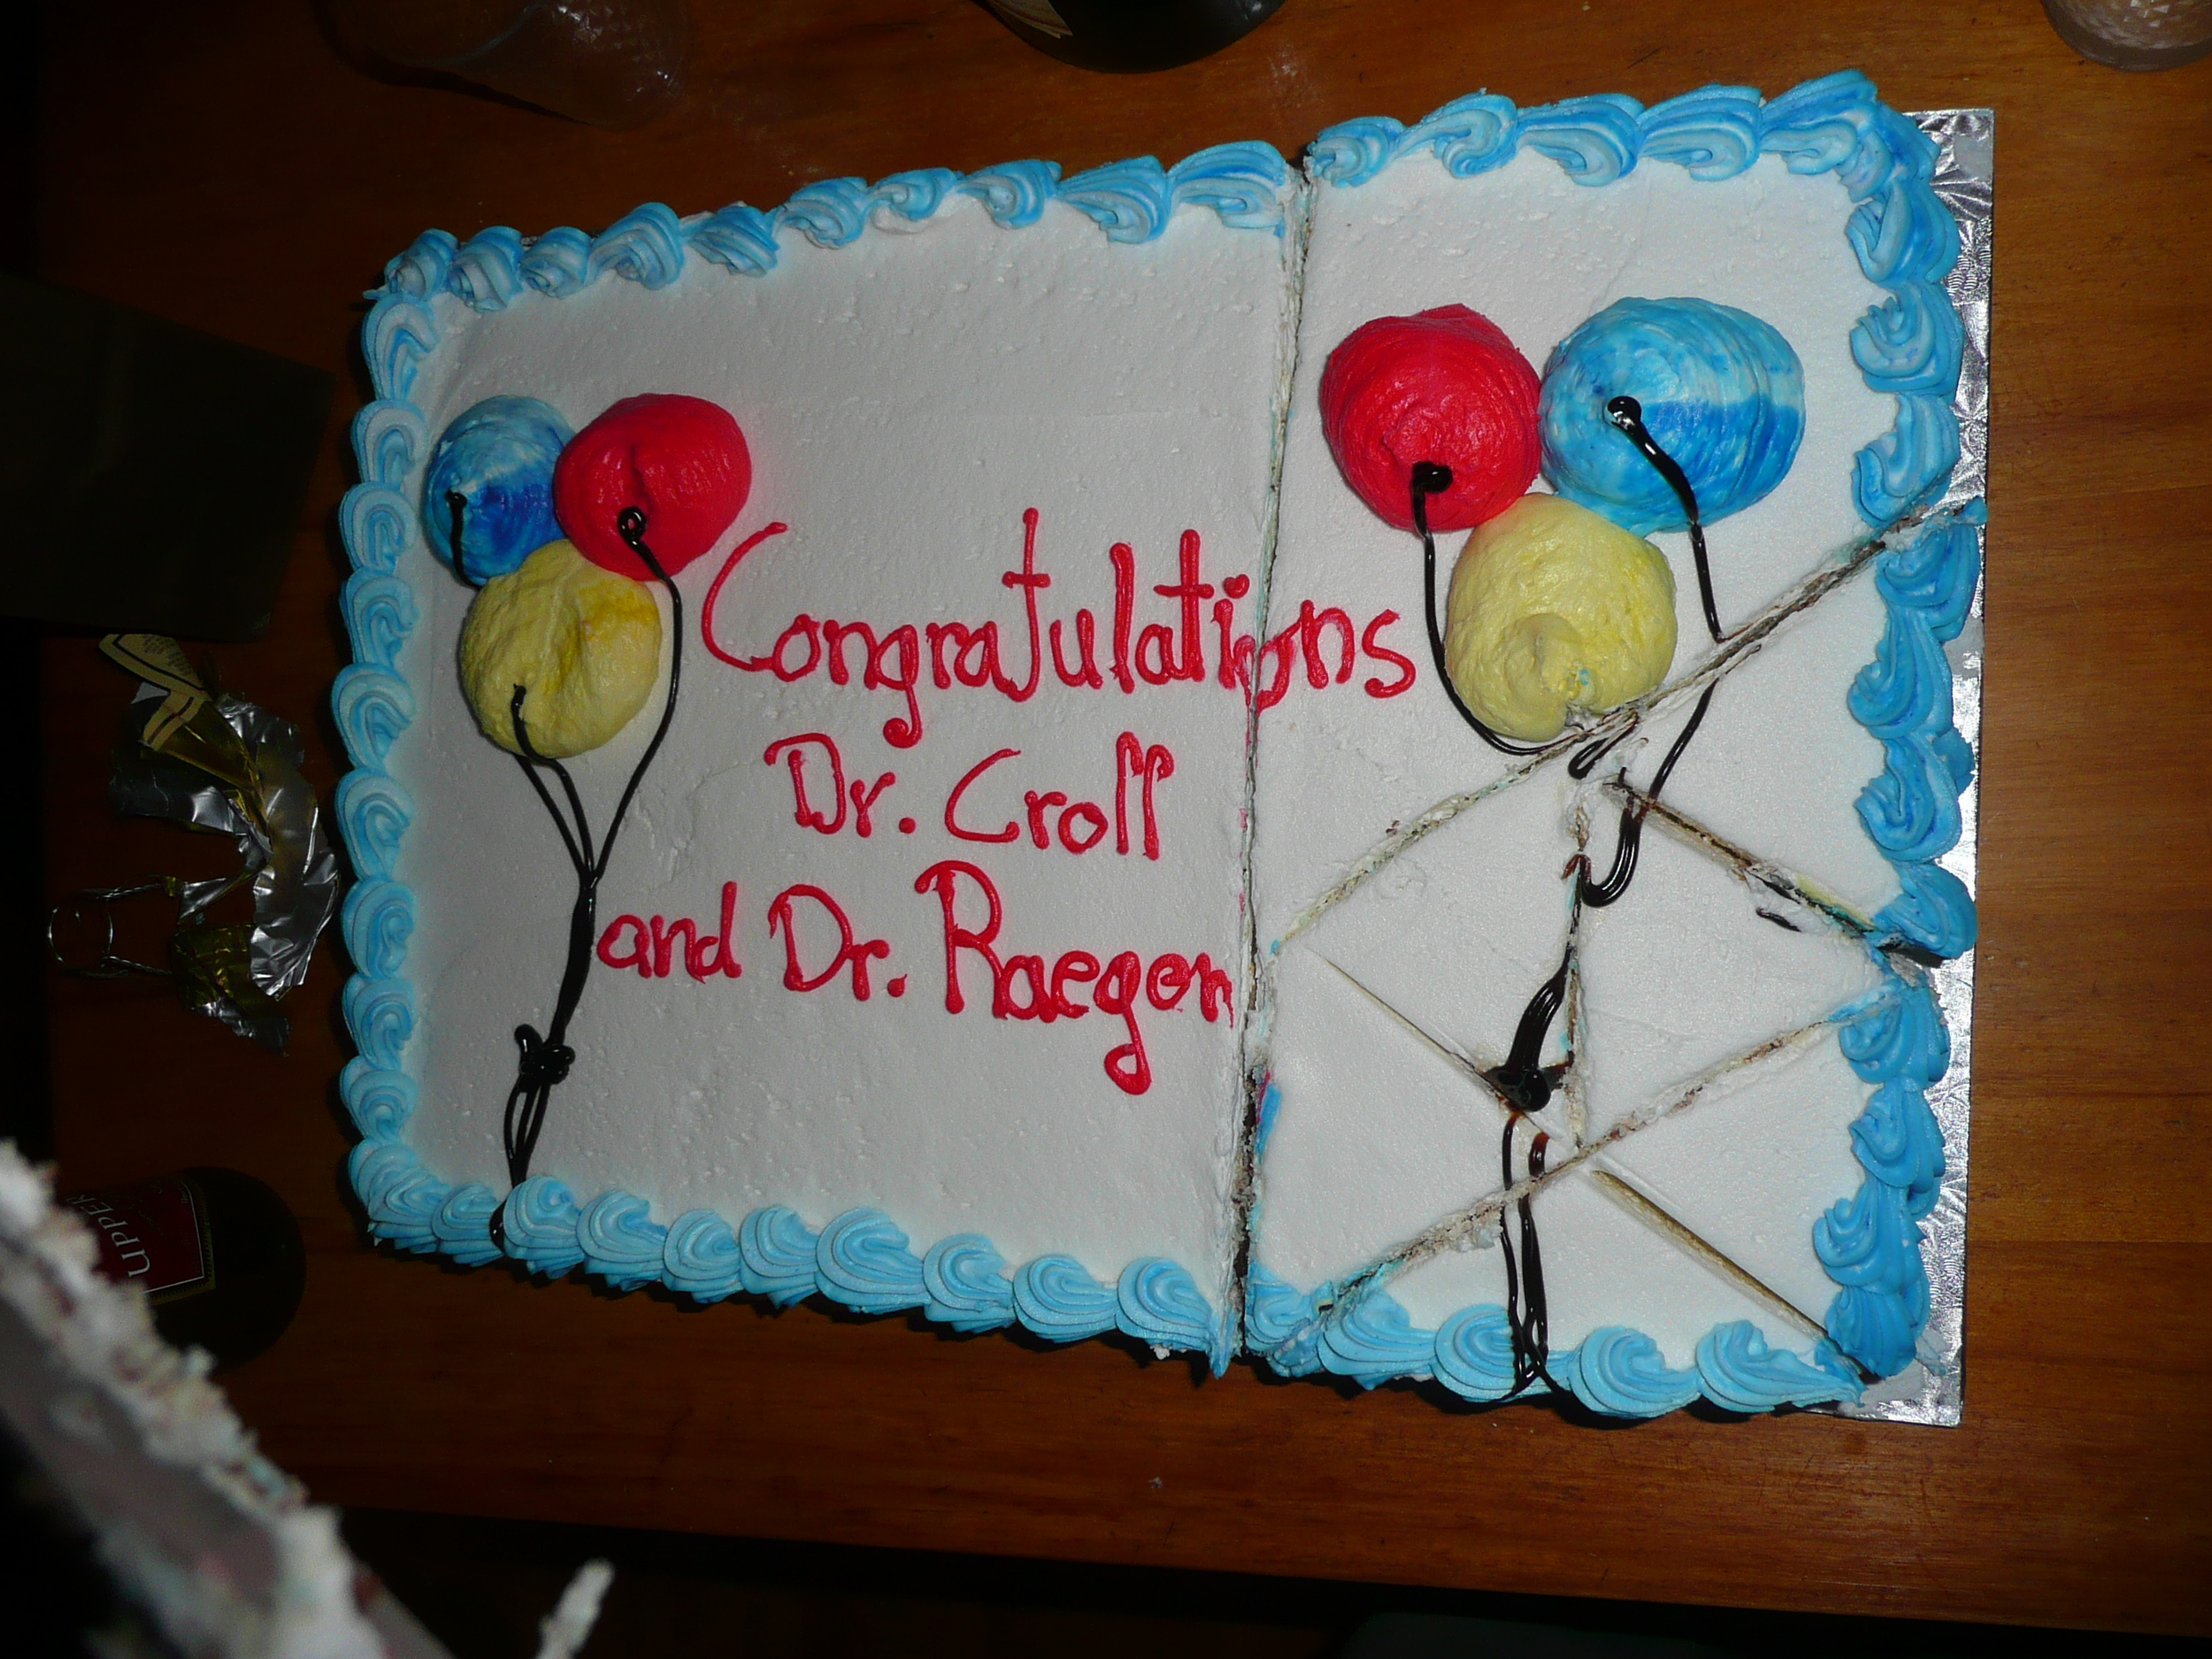 Congratulations Dr. Croll and Dr. Raegen